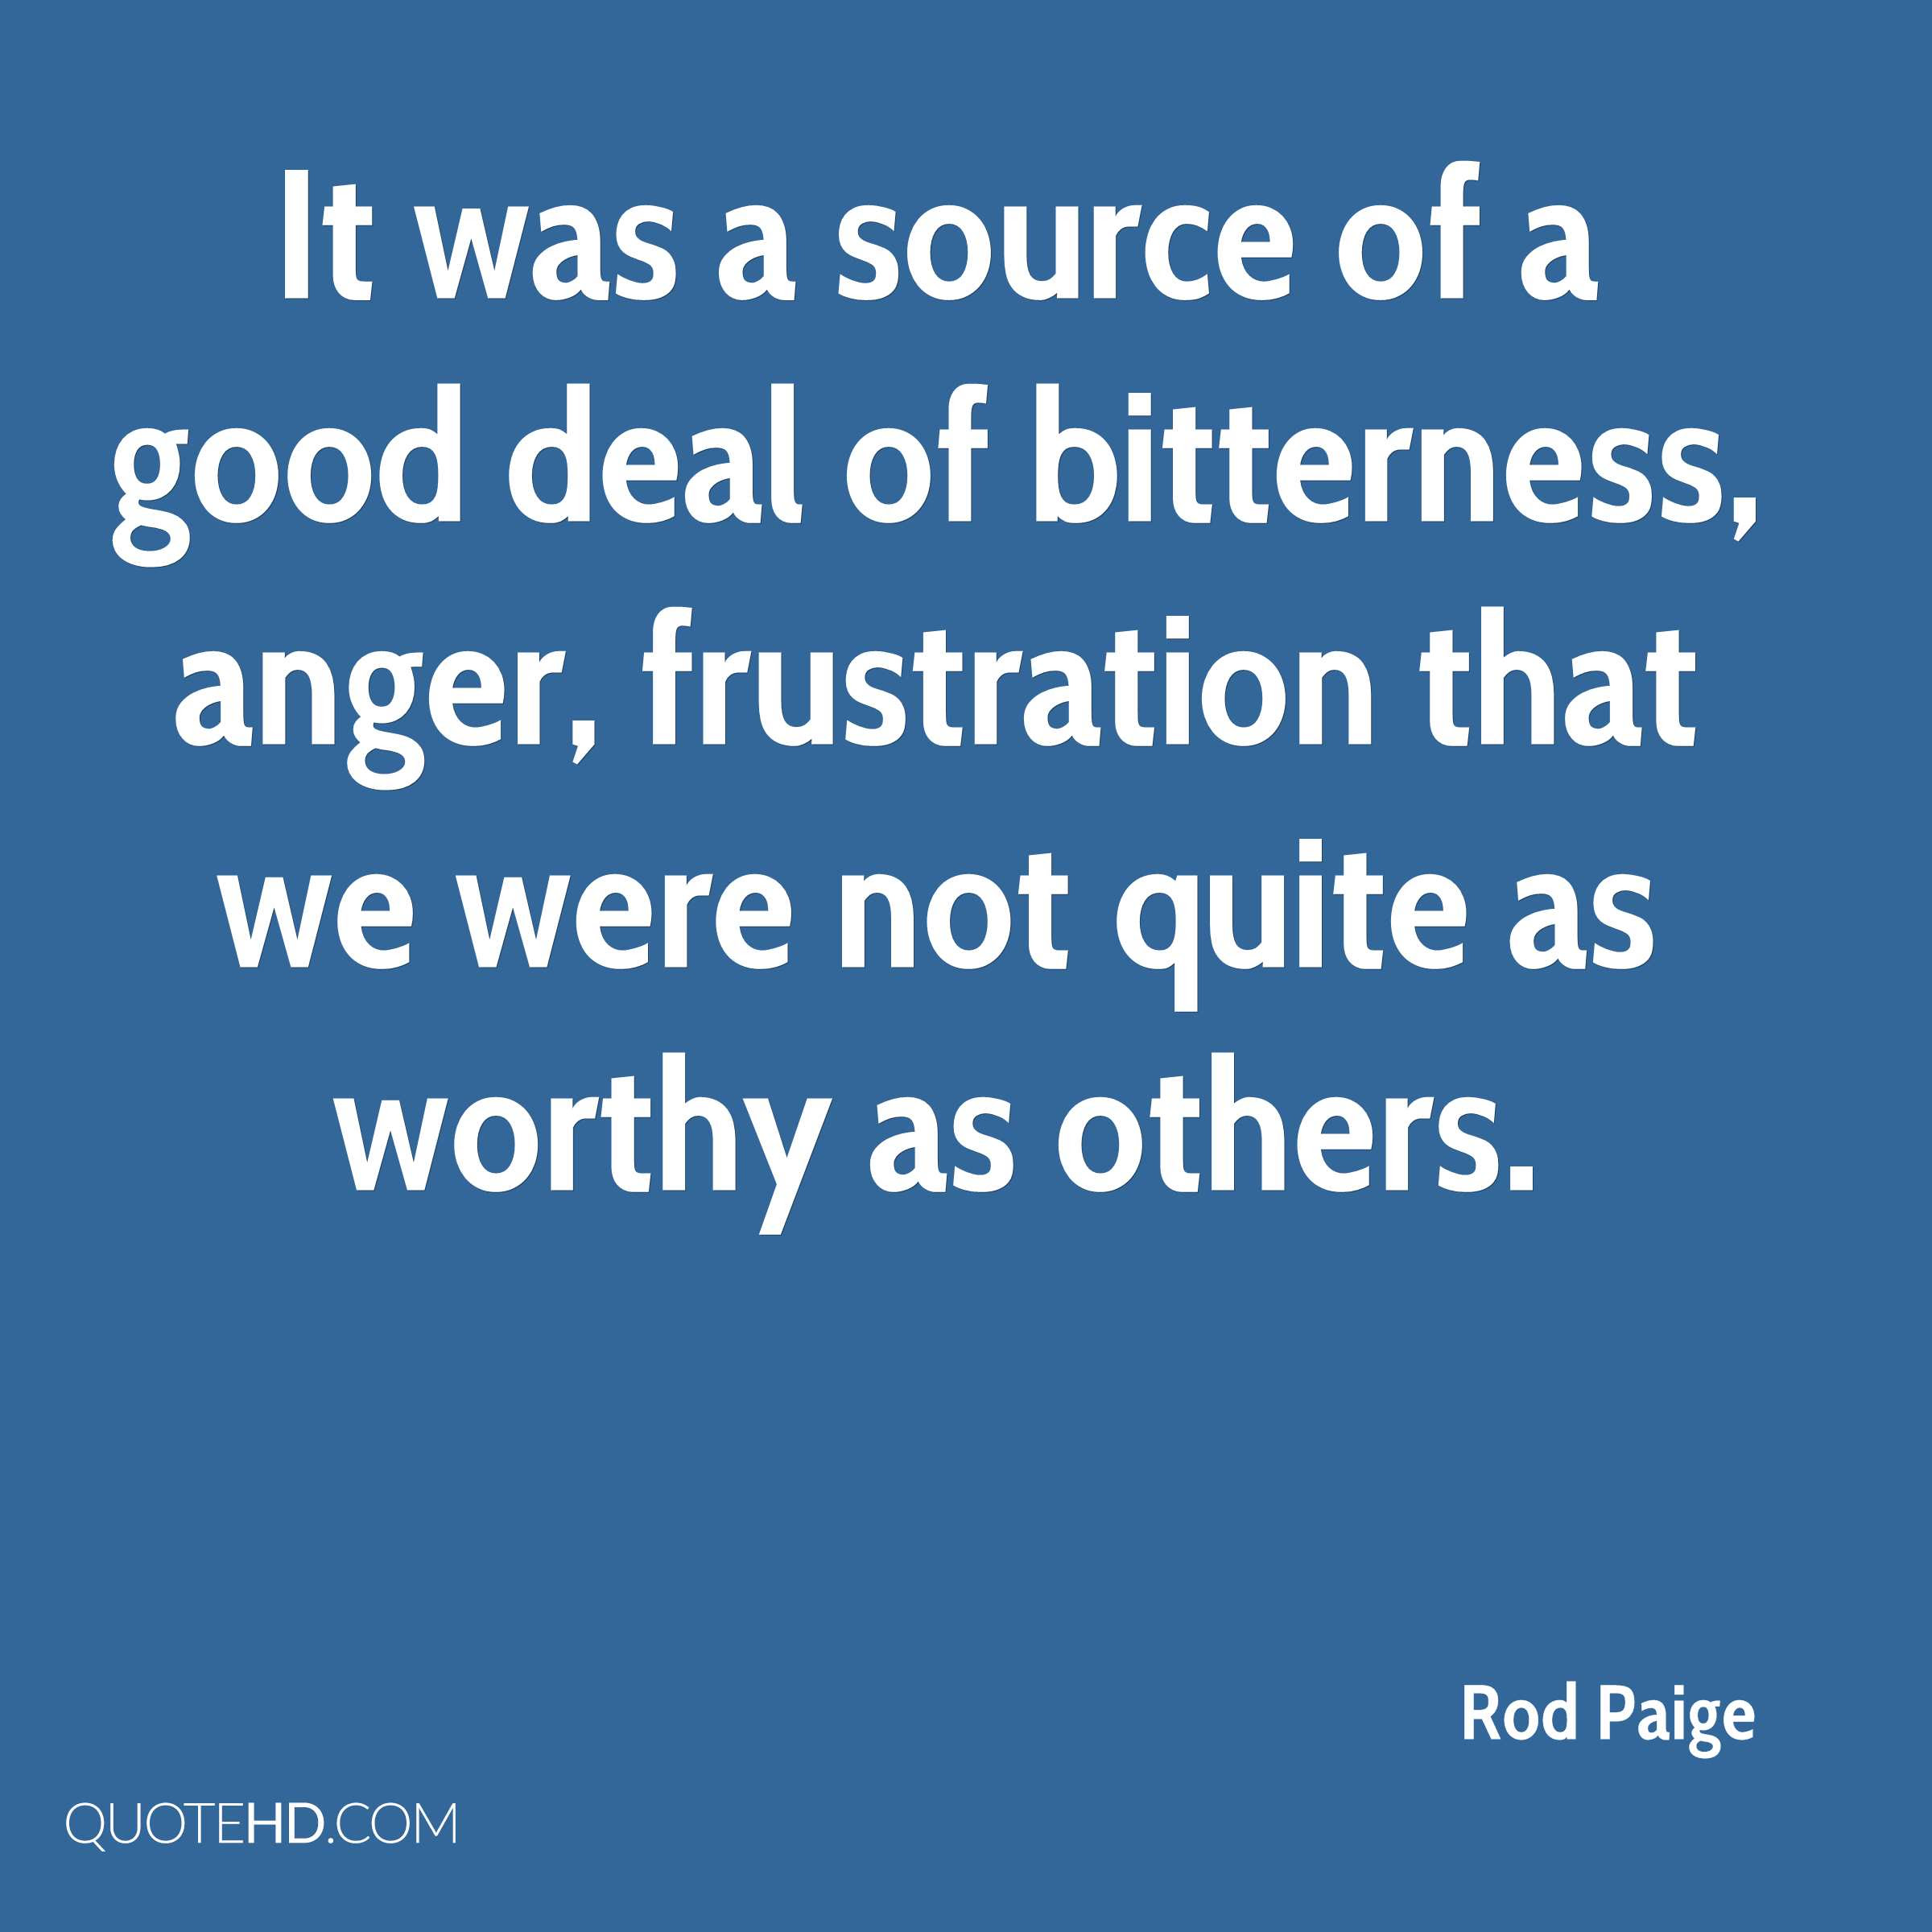 Rod Paige Quotes Quotehd